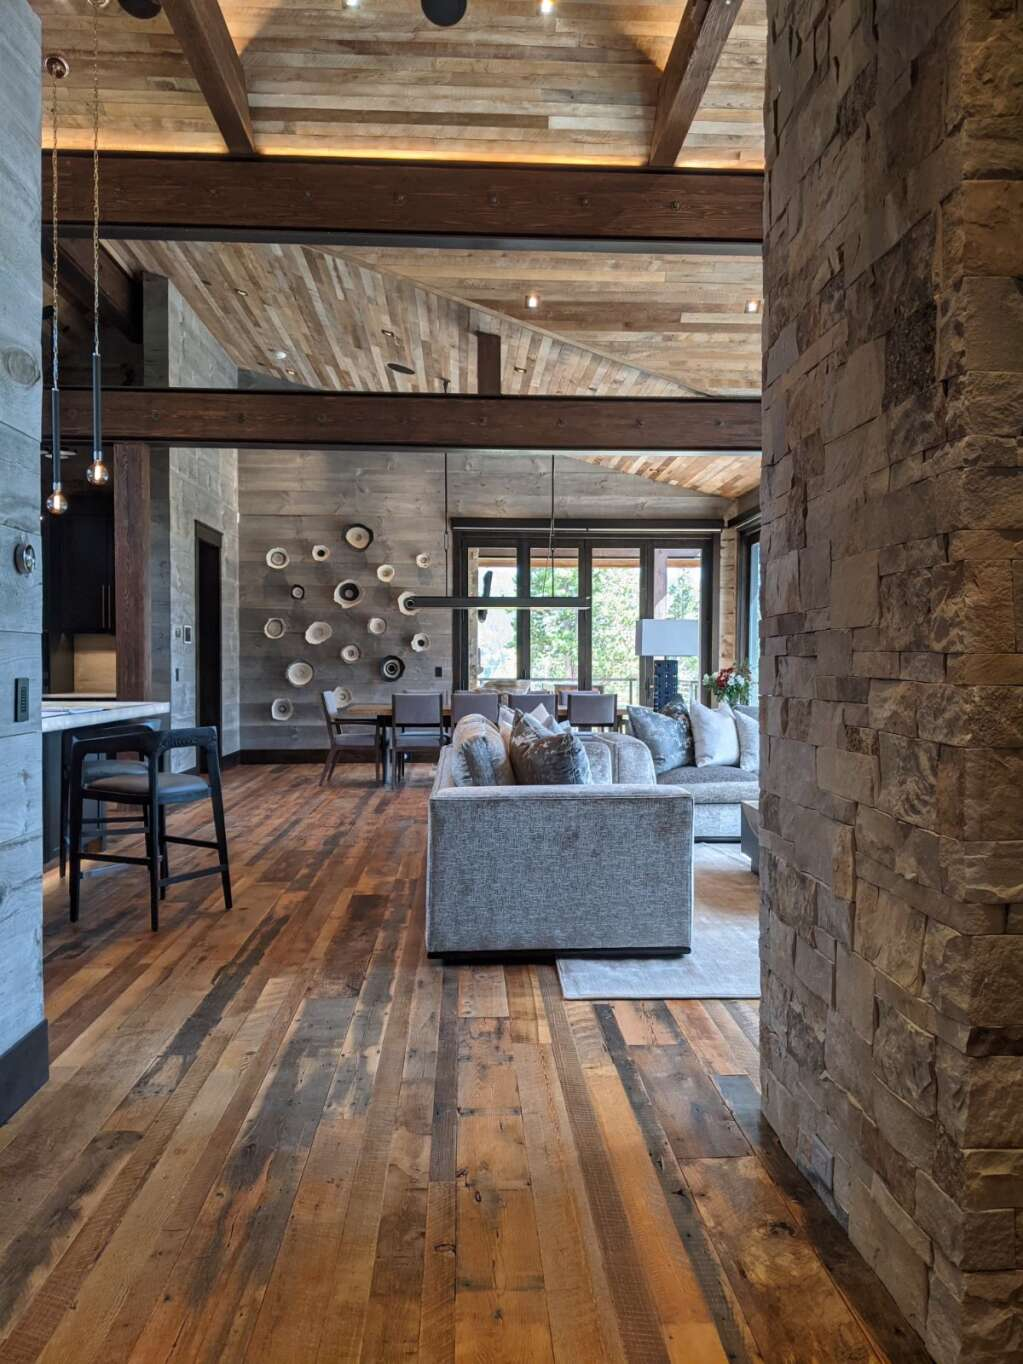 The 2021 Parade of Homes' Mountain Living Peak Award winner was built by The Pinnacle Companies in Breckenridge. The Parade of Homes takes place over two weekends thiis year.   Summit County Builders Association/Courtesy photo